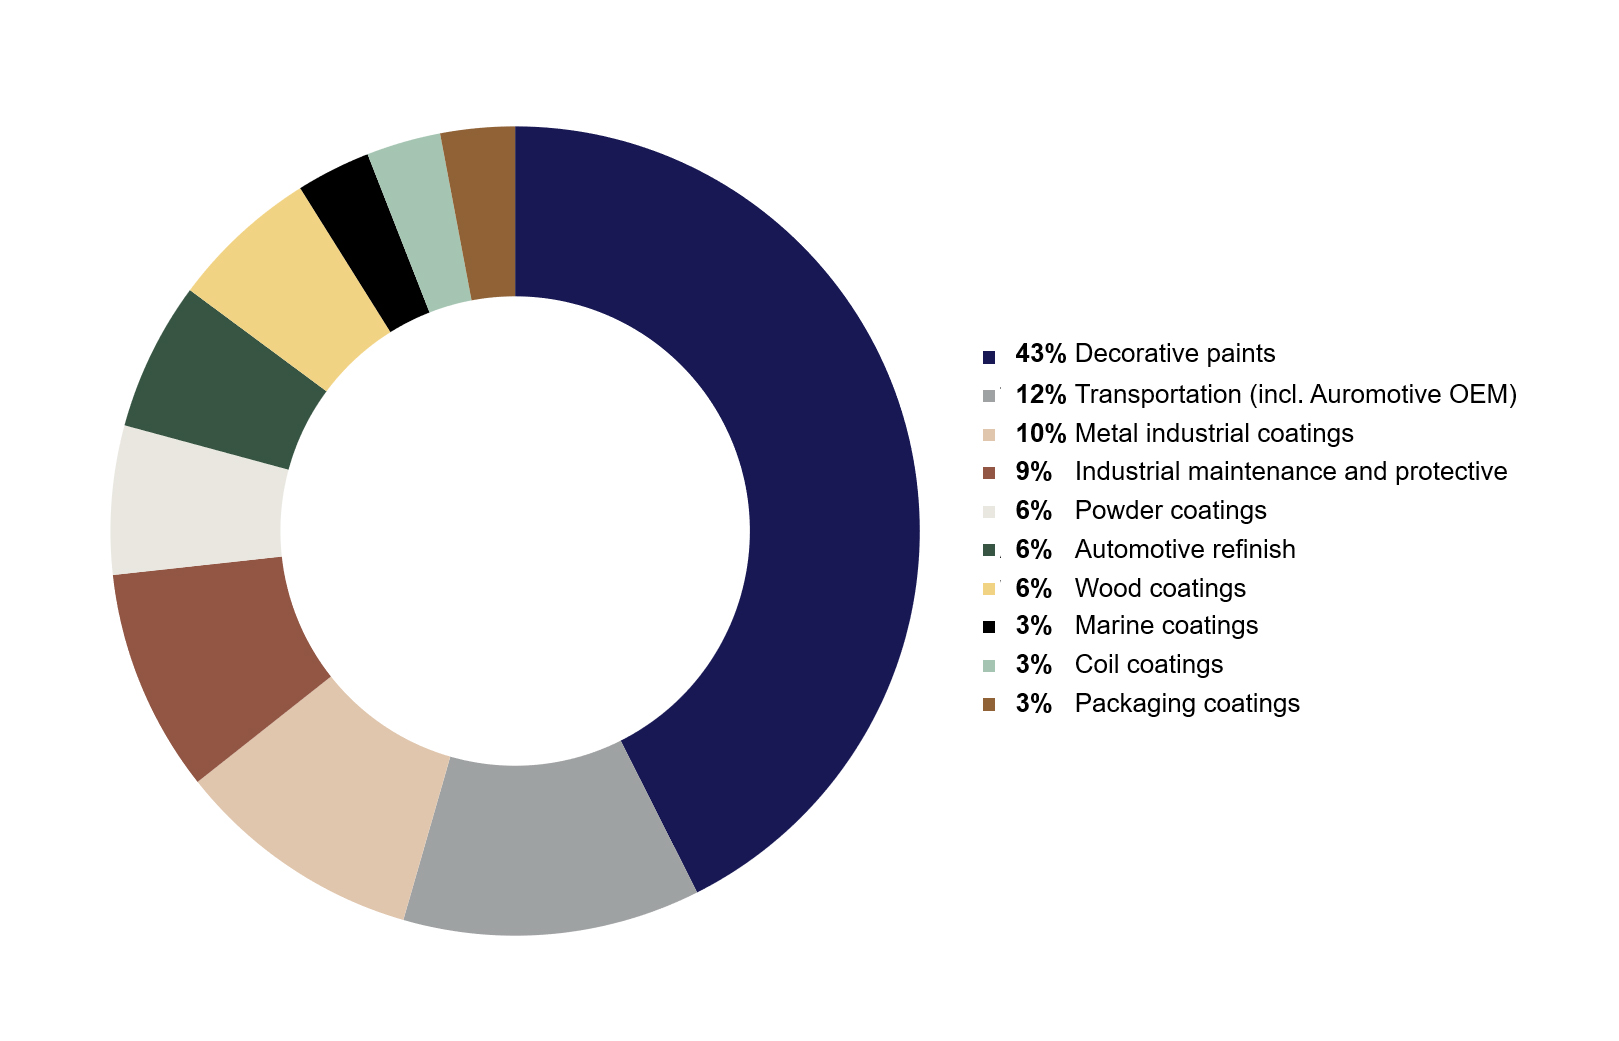 Value of the global paints market